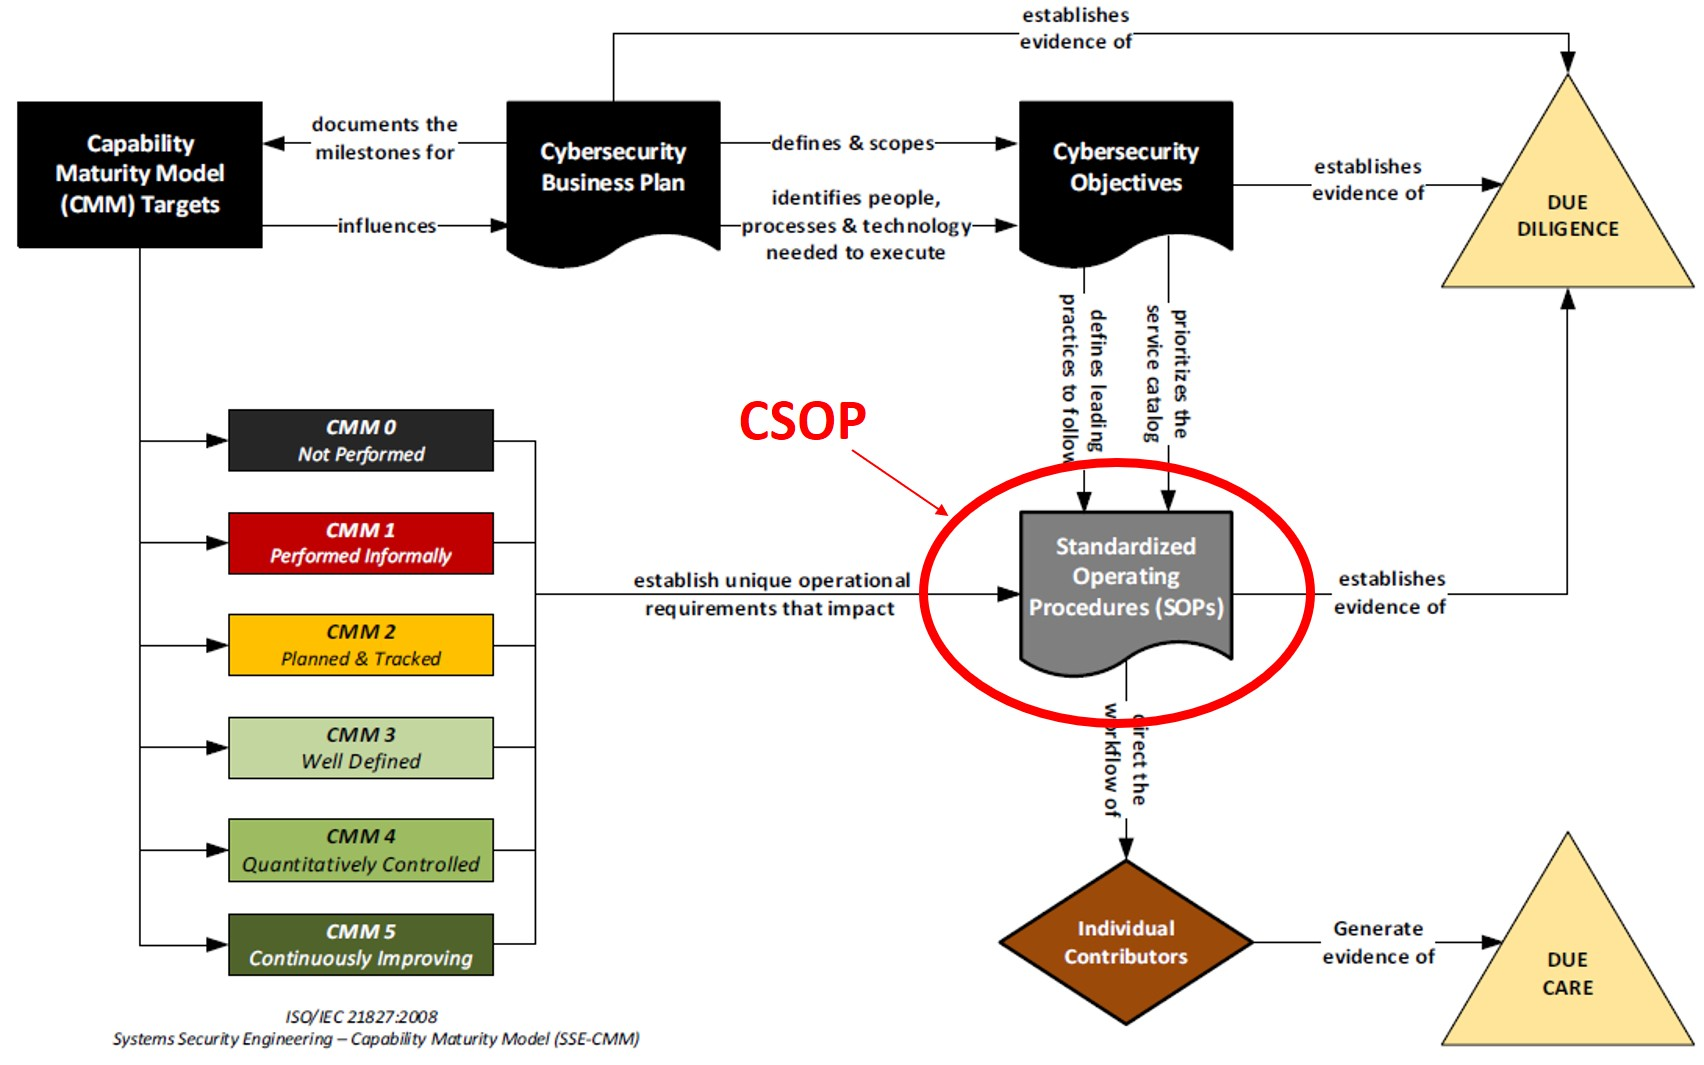 2020-operationalizing-cybersecurity-planning-model.jpg